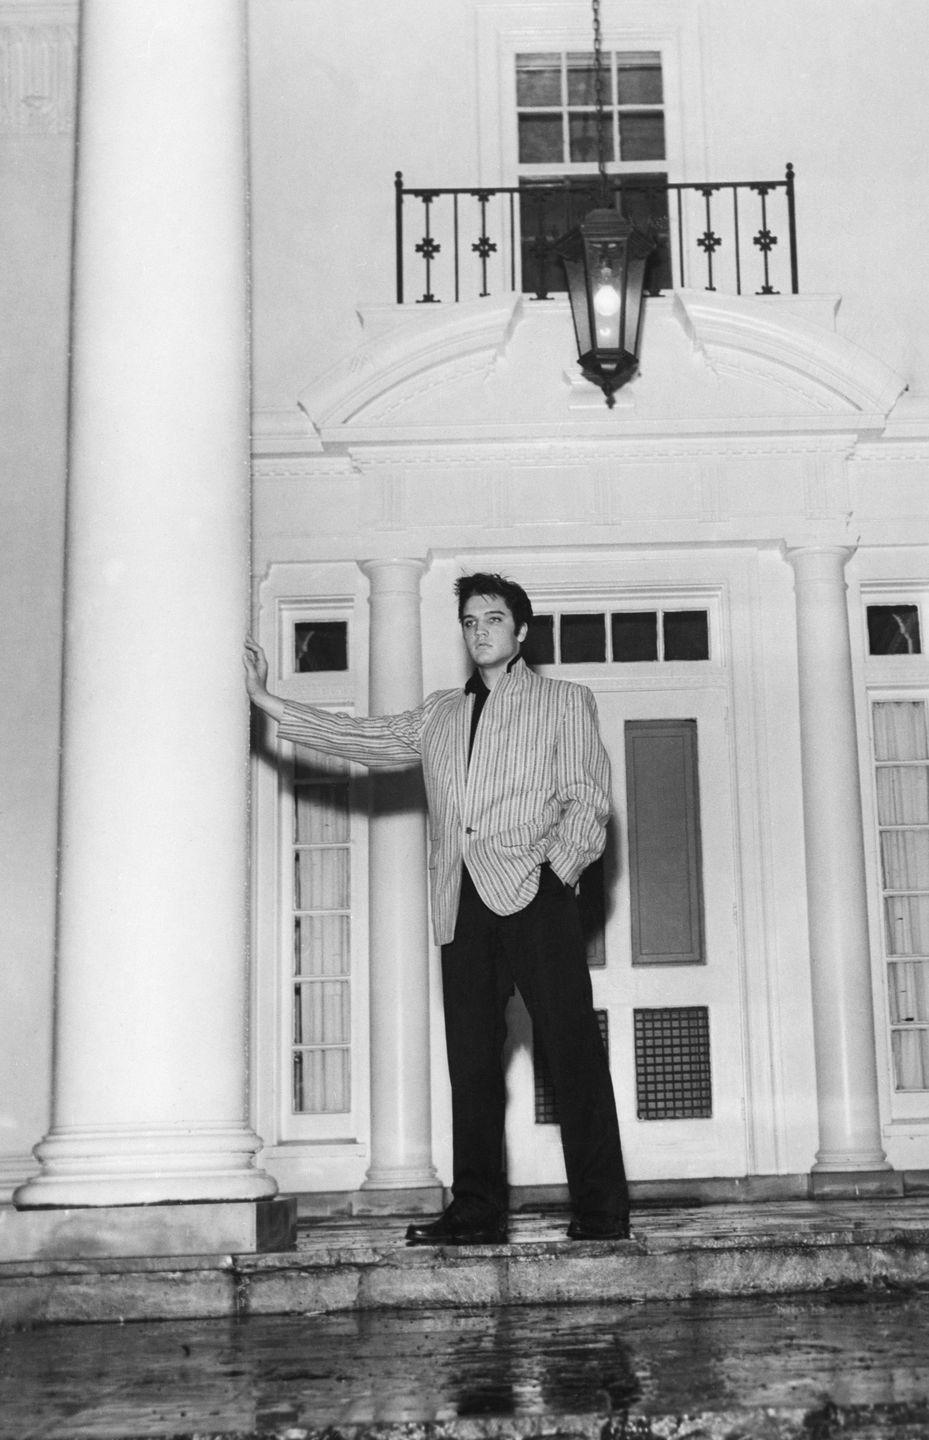 "<p>The extensive property was built in 1939 and was once owned by a prominent Memphis family, the Toofs. The name Graceland was <a href=""https://www.elvis.com.au/presley/the-moores-and-presleys-at-graceland.shtml"" rel=""nofollow noopener"" target=""_blank"" data-ylk=""slk:an ode to Grace Toof Ward"" class=""link rapid-noclick-resp"">an ode to Grace Toof Ward</a>.</p>"